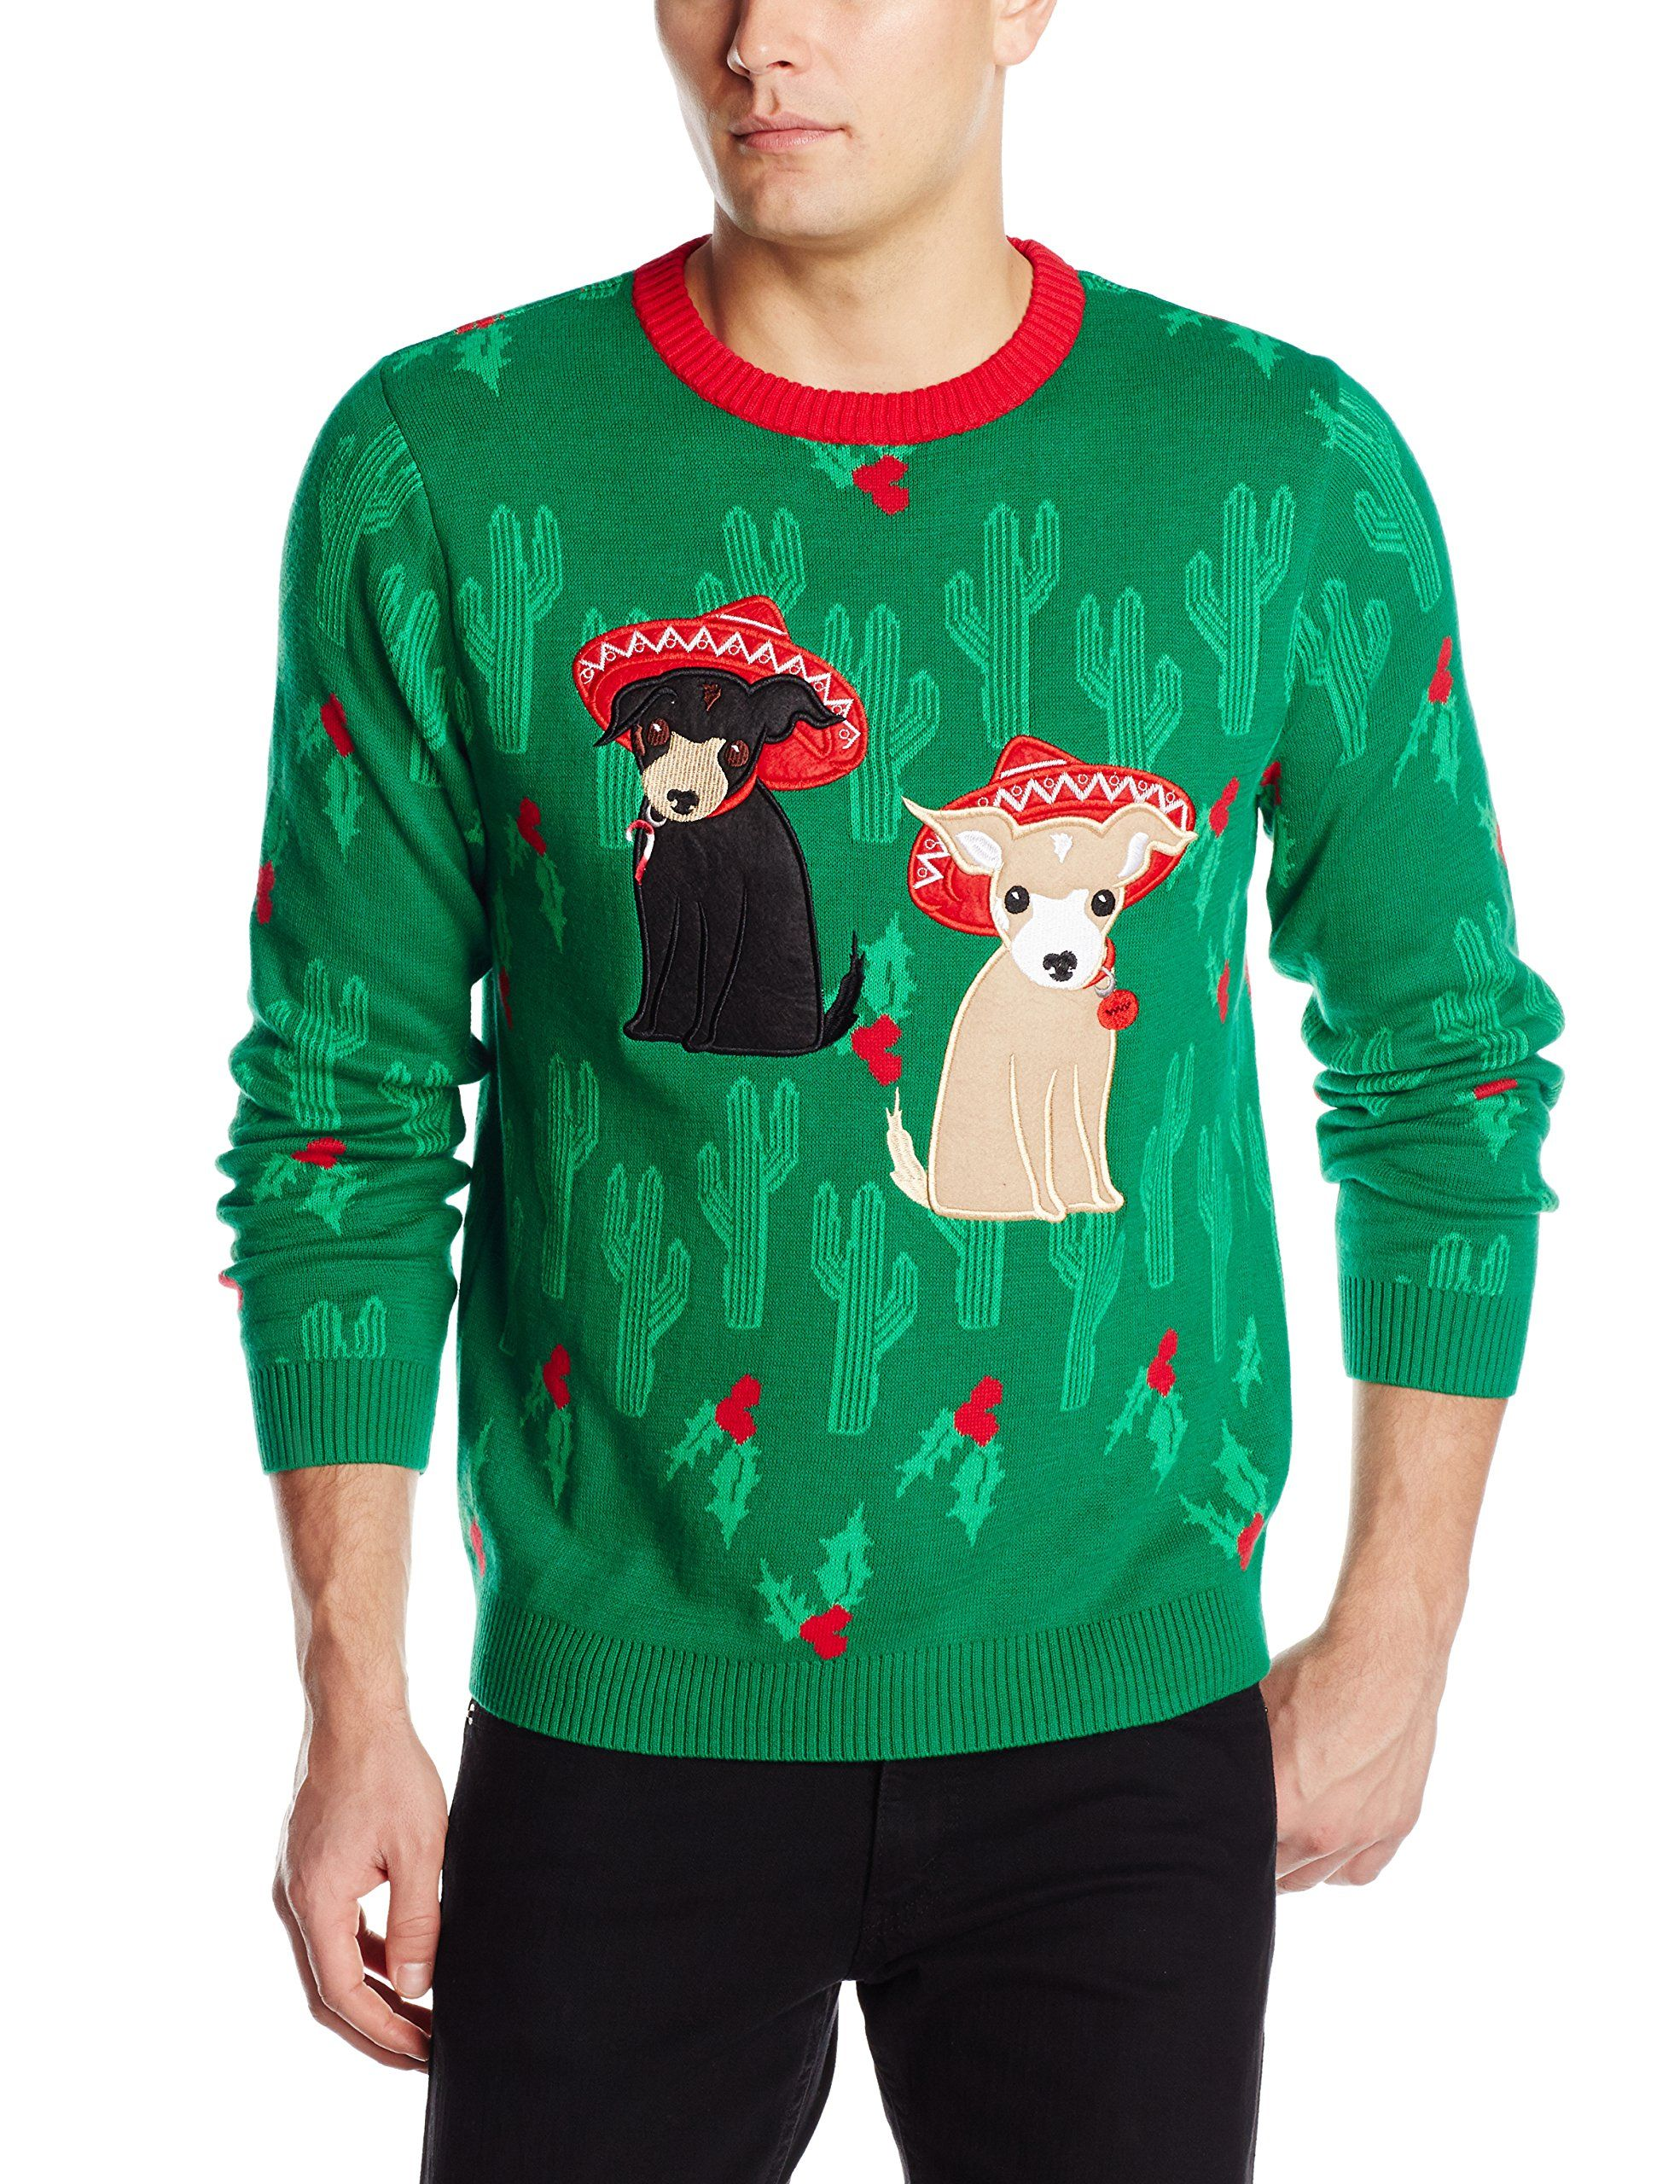 f92db03af32a Alex Stevens Men s Merry Chihuahua Ugly Christmas Sweater at Amazon ...